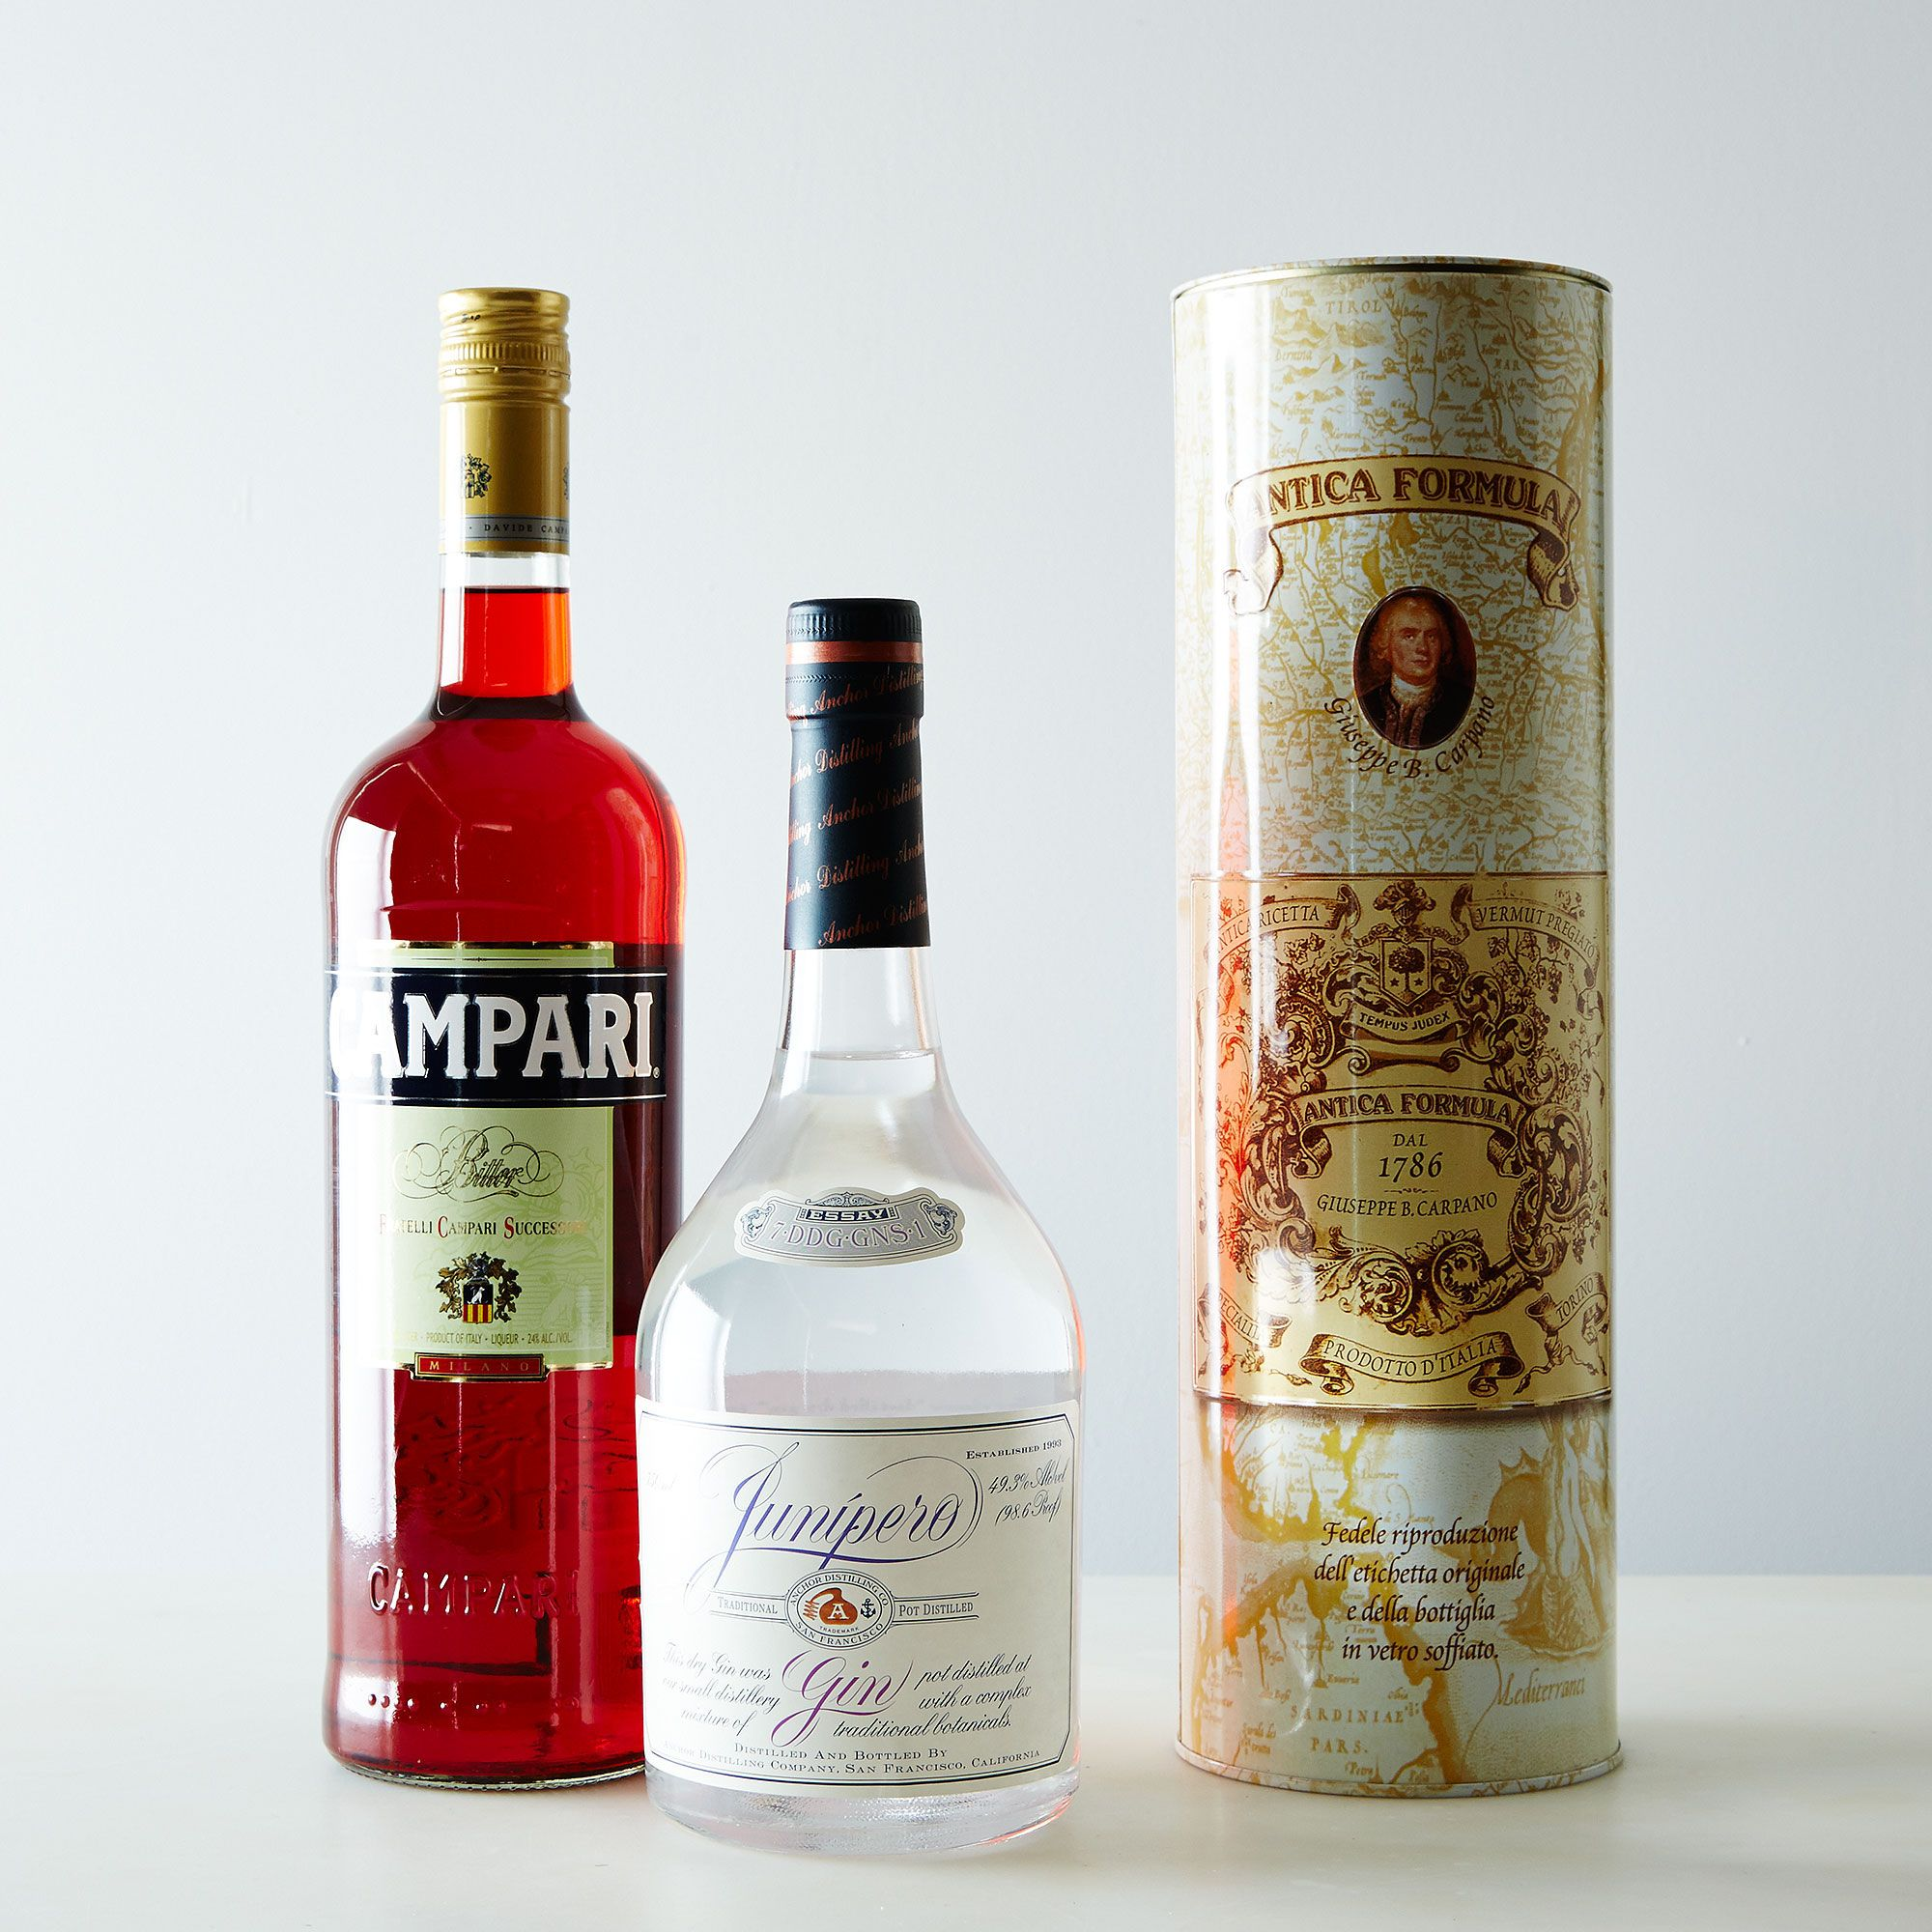 B1bacc79-f18f-45a6-9ff5-a907b6b0468e--2014-1017_merchants-of-beverage_negroni-cocktail-collection-006